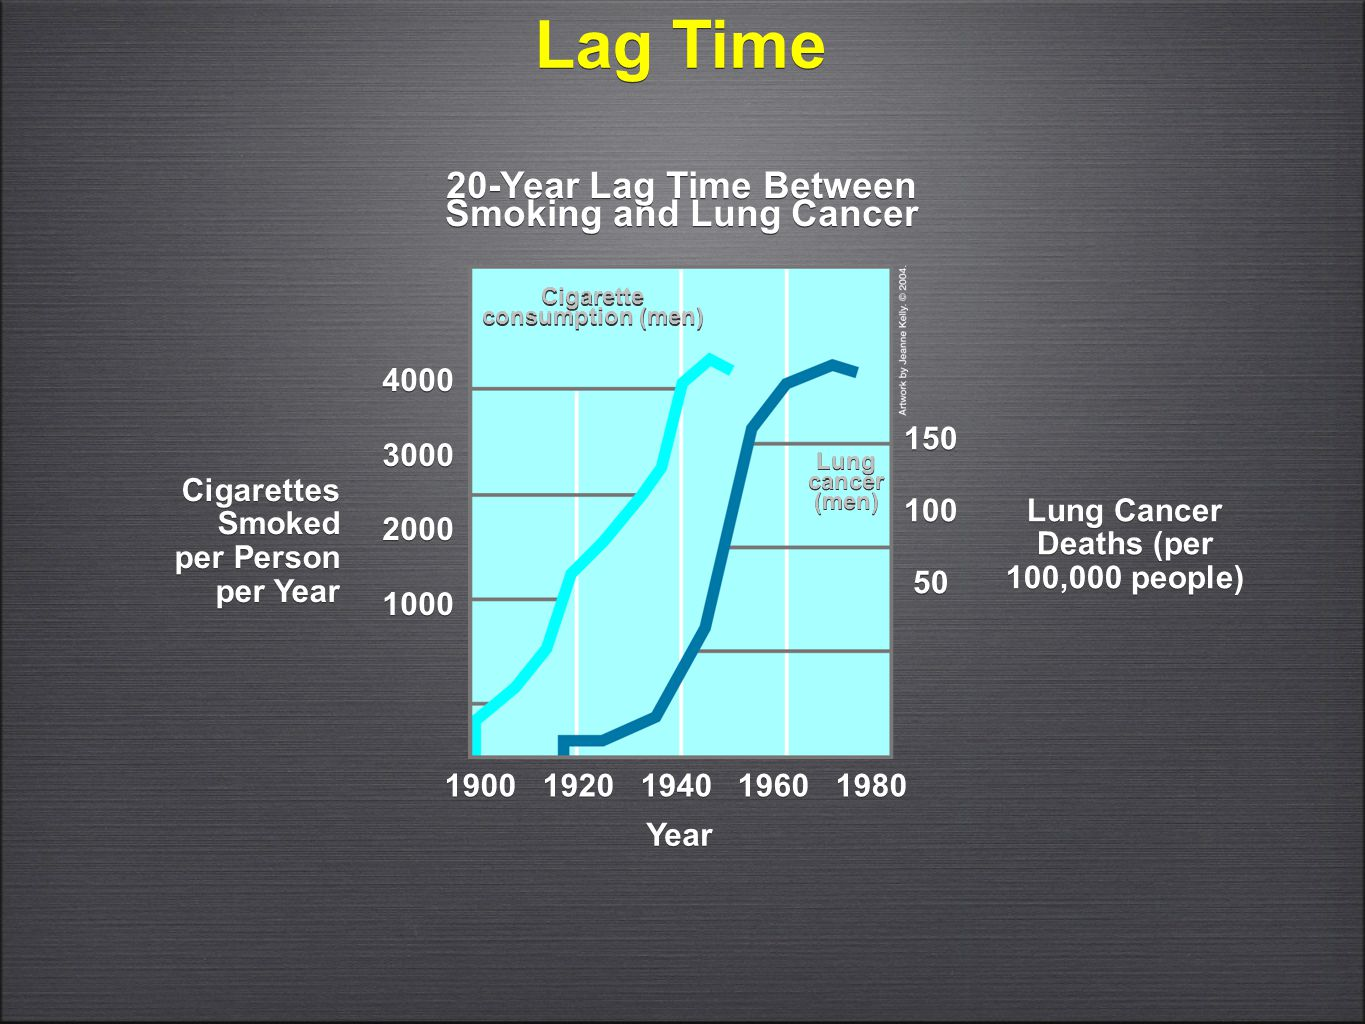 Lag Time 4000 3000 2000 1000 4000 3000 2000 1000 20-Year Lag Time Between Smoking and Lung Cancer Cigarettes Smoked per Person per Year Cigarettes Smo